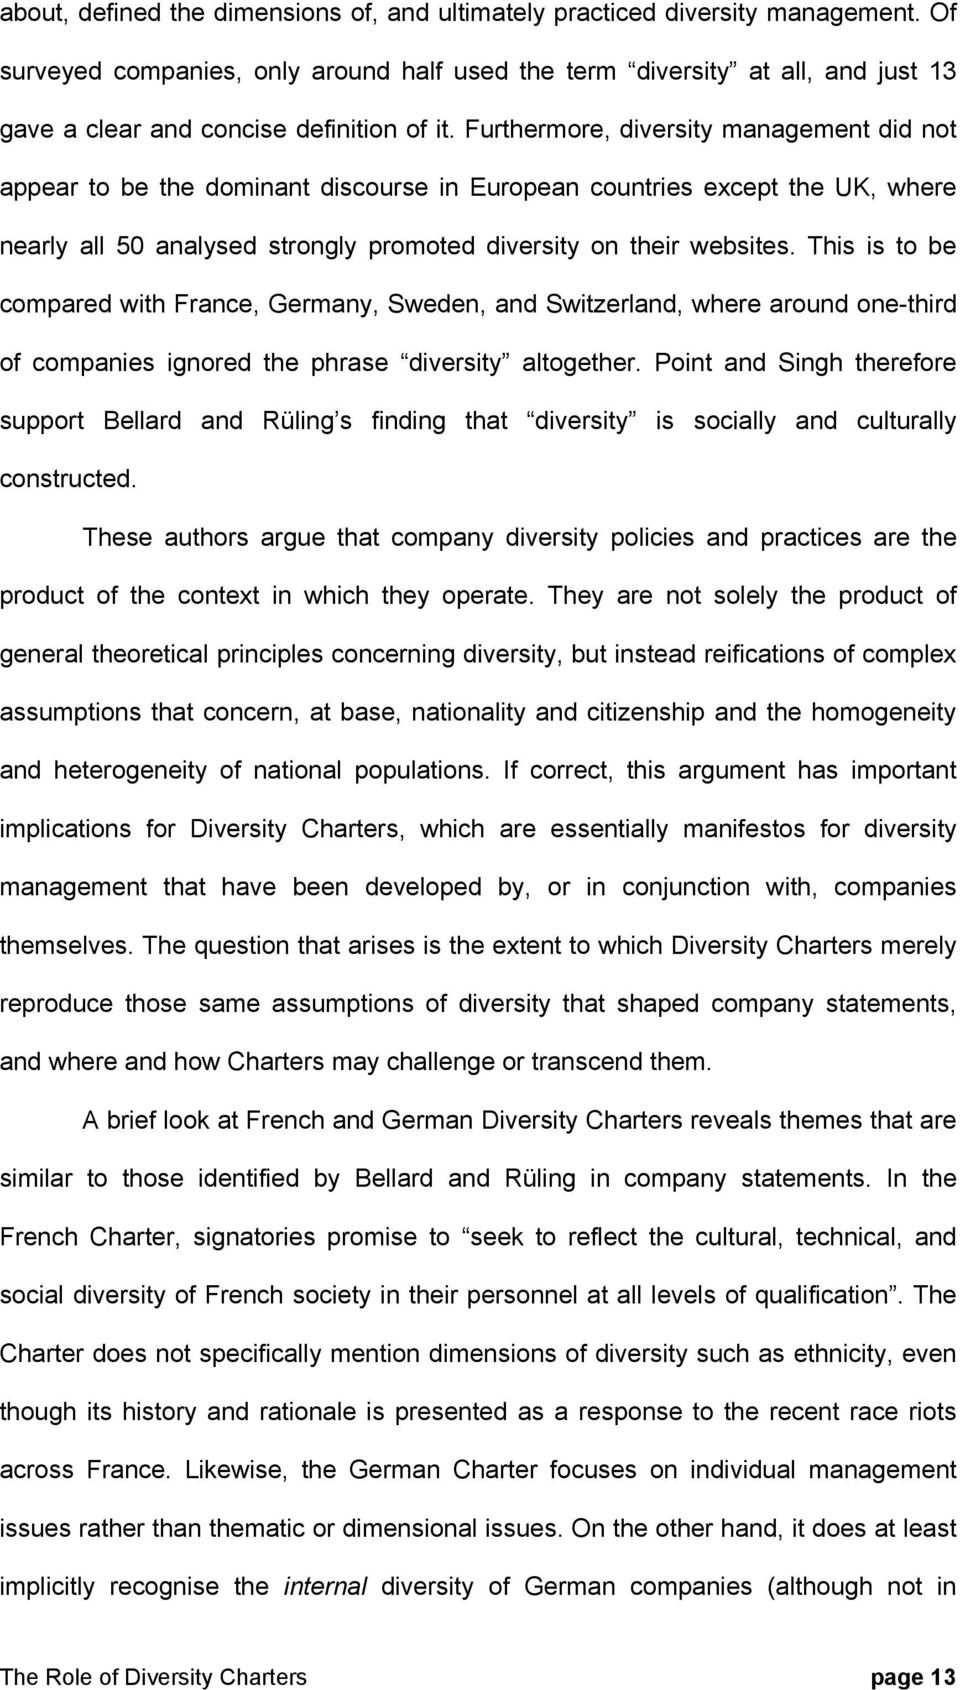 Furthermore, diversity management did not appear to be the dominant discourse in European countries except the UK, where nearly all 50 analysed strongly promoted diversity on their websites.